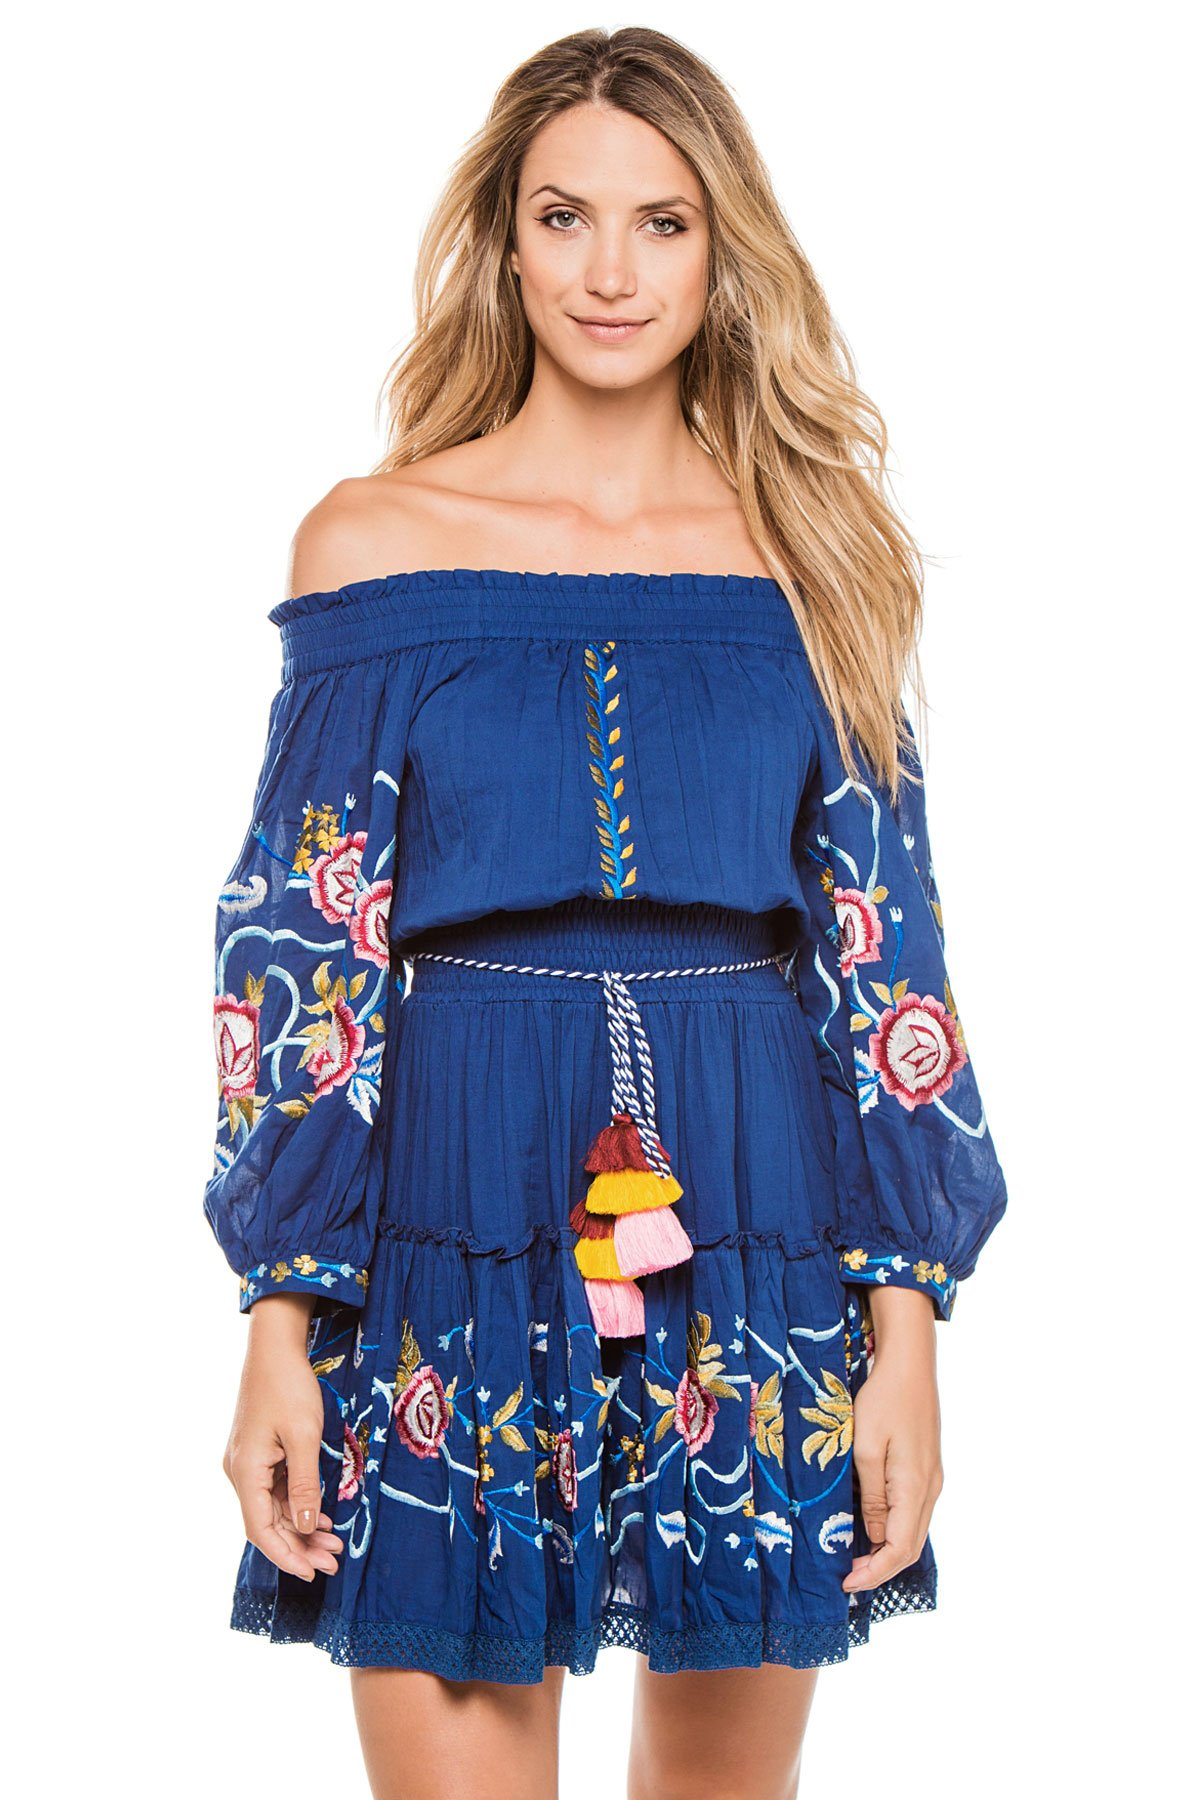 Misa Los Angeles Women's Emylee Off the Shoulder Embroidered Dress Swim Cover Up Blue S by Misa Los Angeles